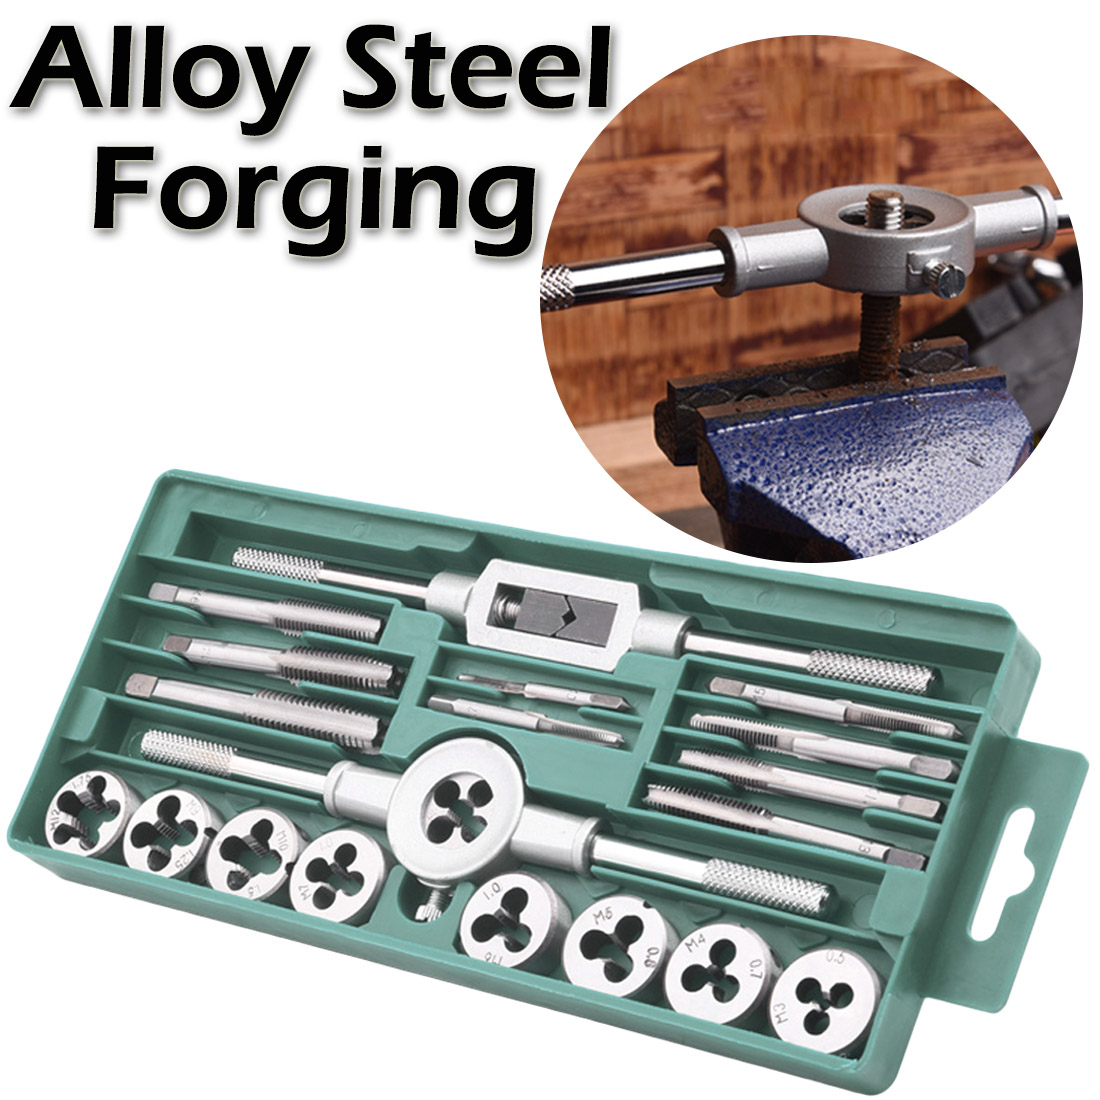 Tap And Die Cutter Set 20pcs Alloy Steel Tap & Die Set With Small Tap Twisted Hand Tools 1/16-1/2 Inch NC Screw Thread Plugs Tap